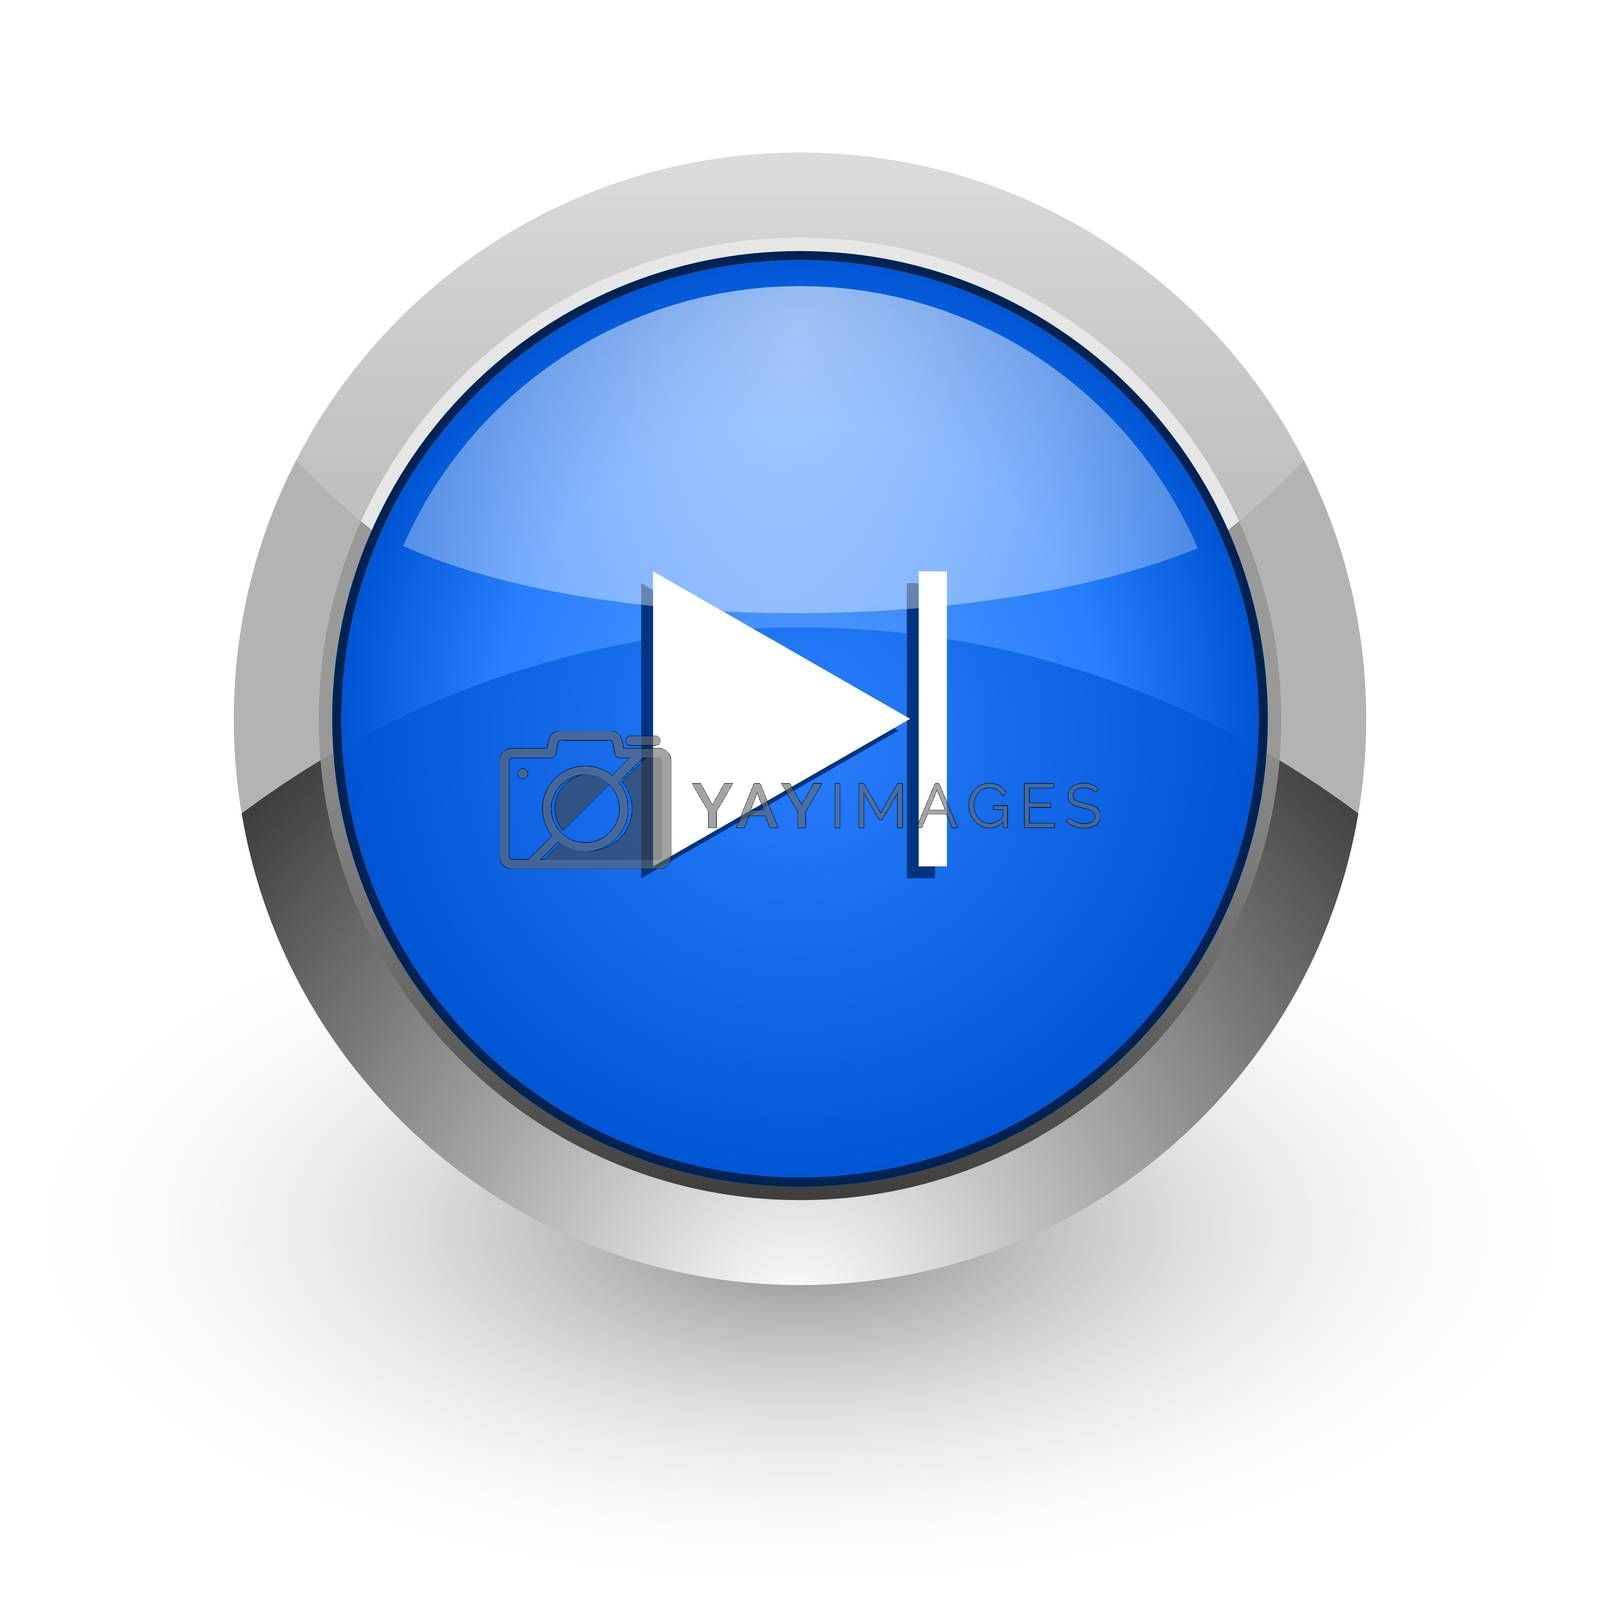 Royalty free image of next blue glossy web icon by alexwhite